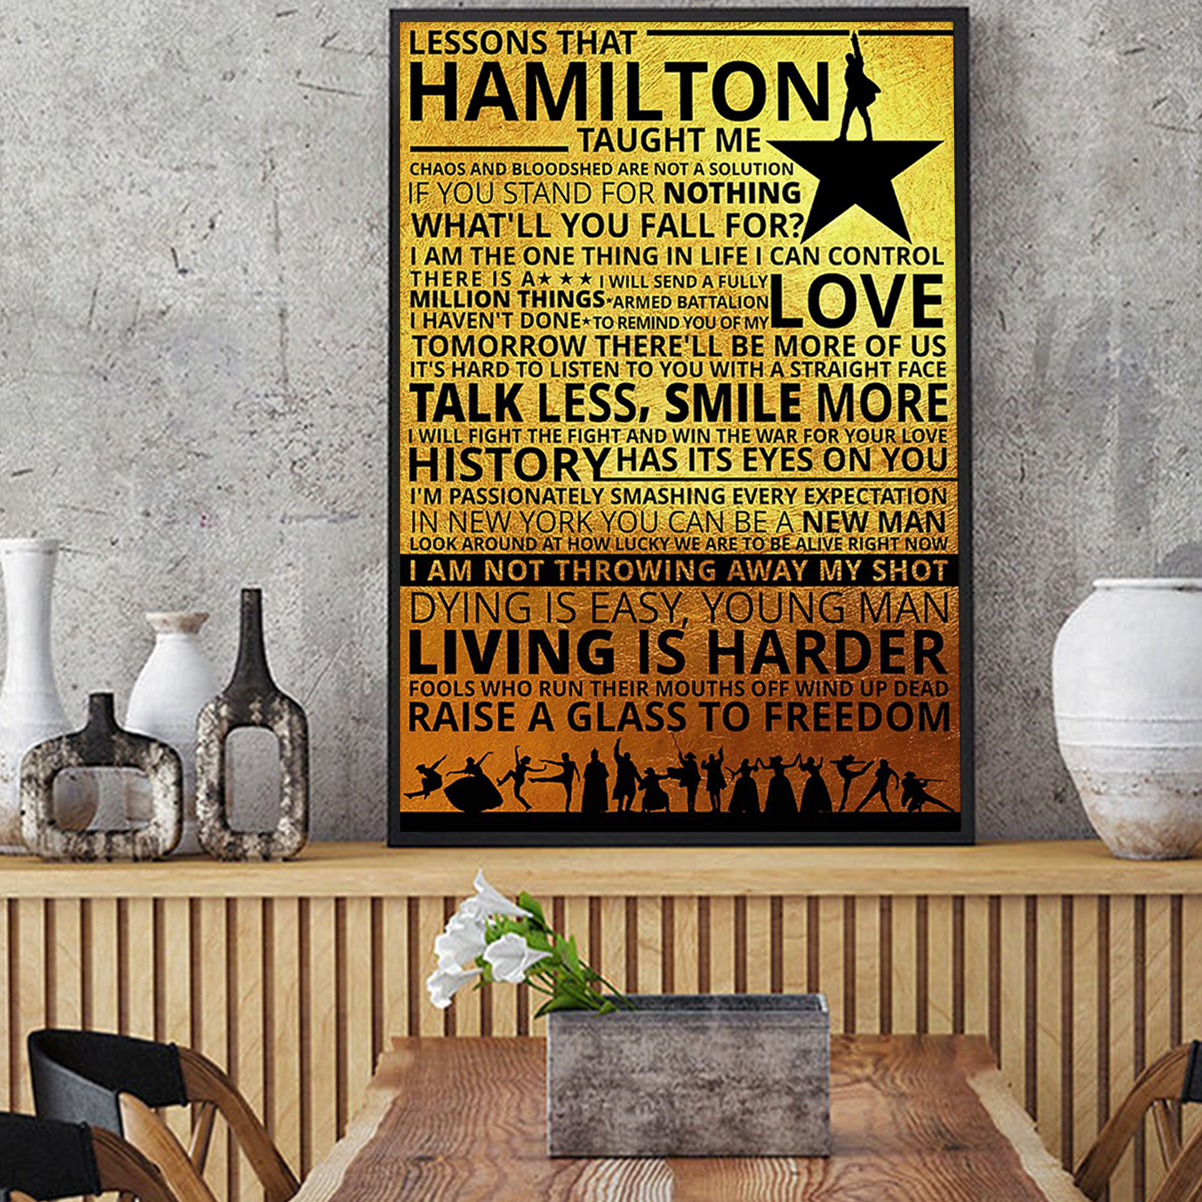 Lessons hamilton taught me poster A3